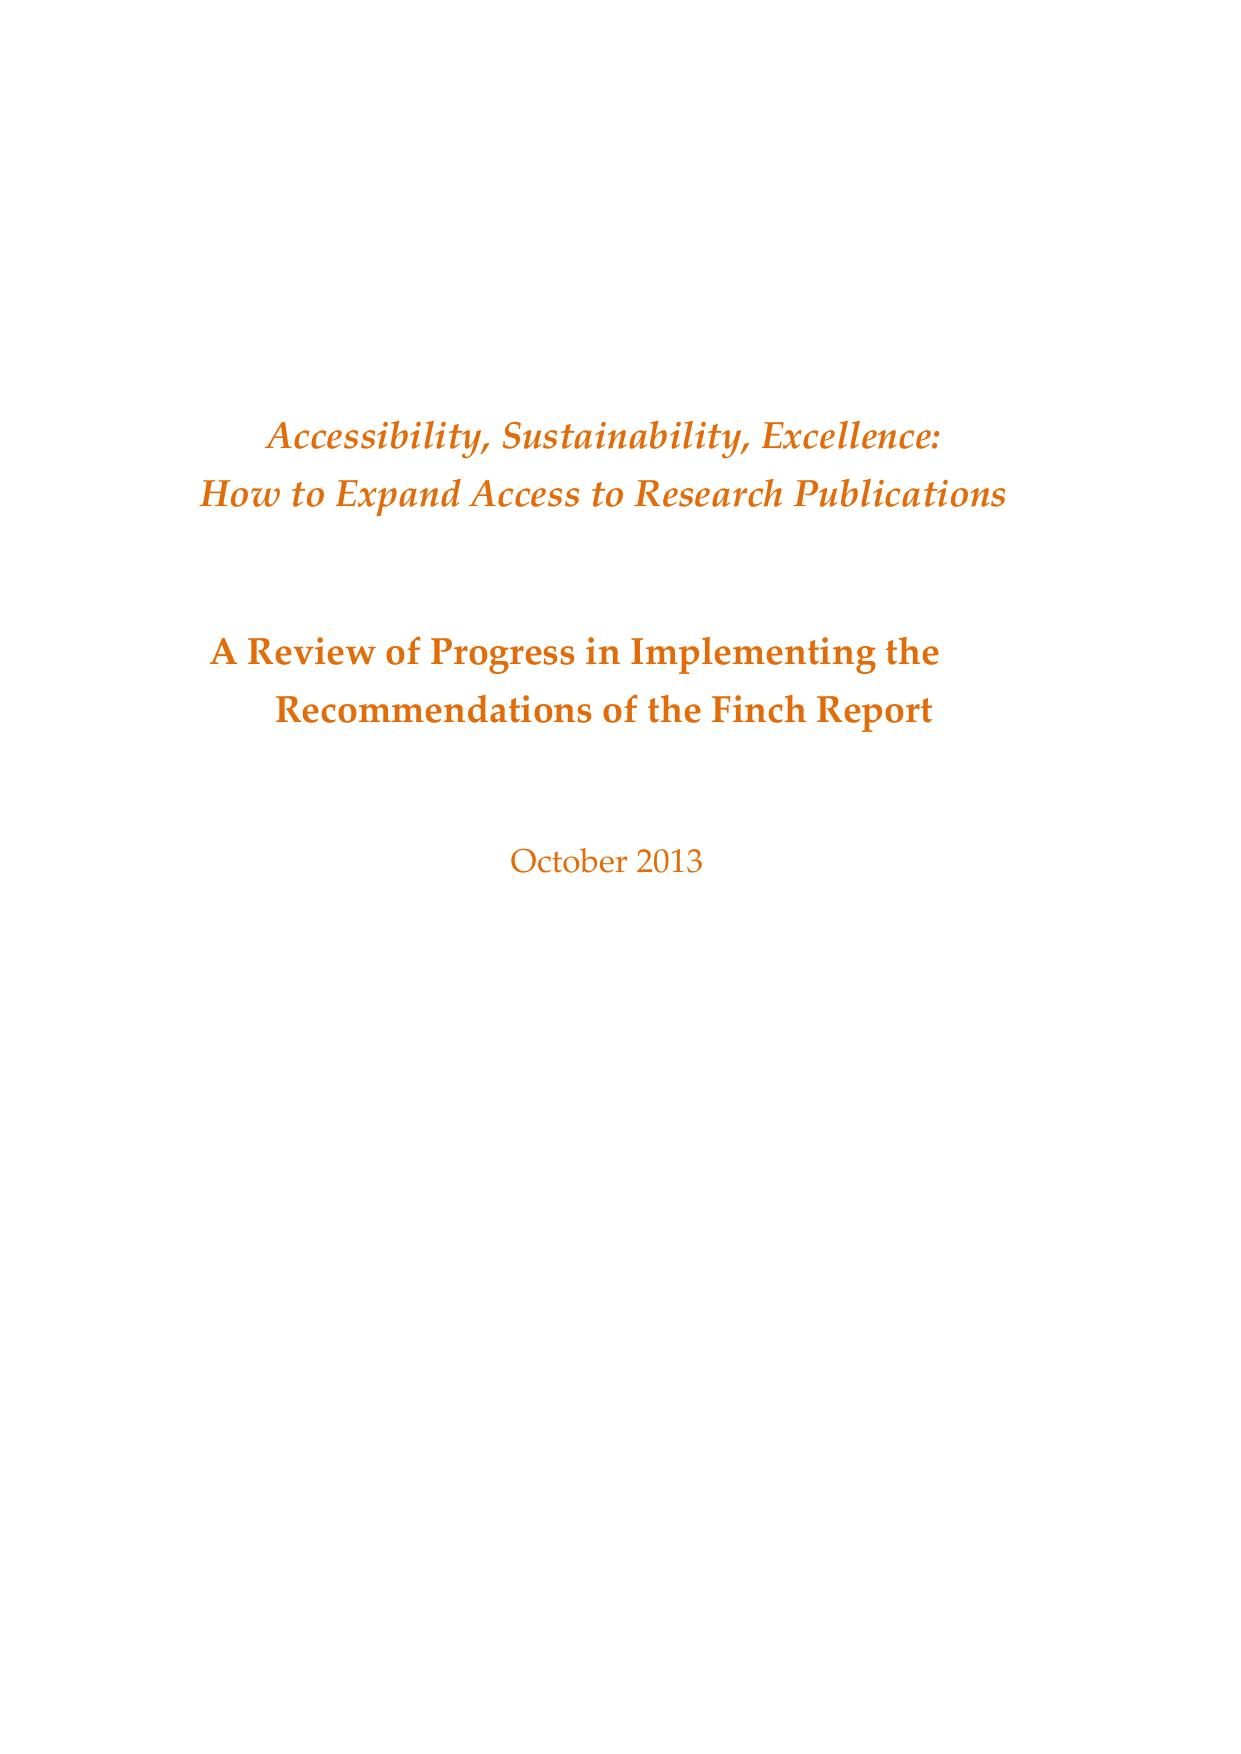 Accessibility, Sustainability, Excellence How to Expand Access to Research Publications: a review of progress in implementing the recommendations of the Finch Report October 2013